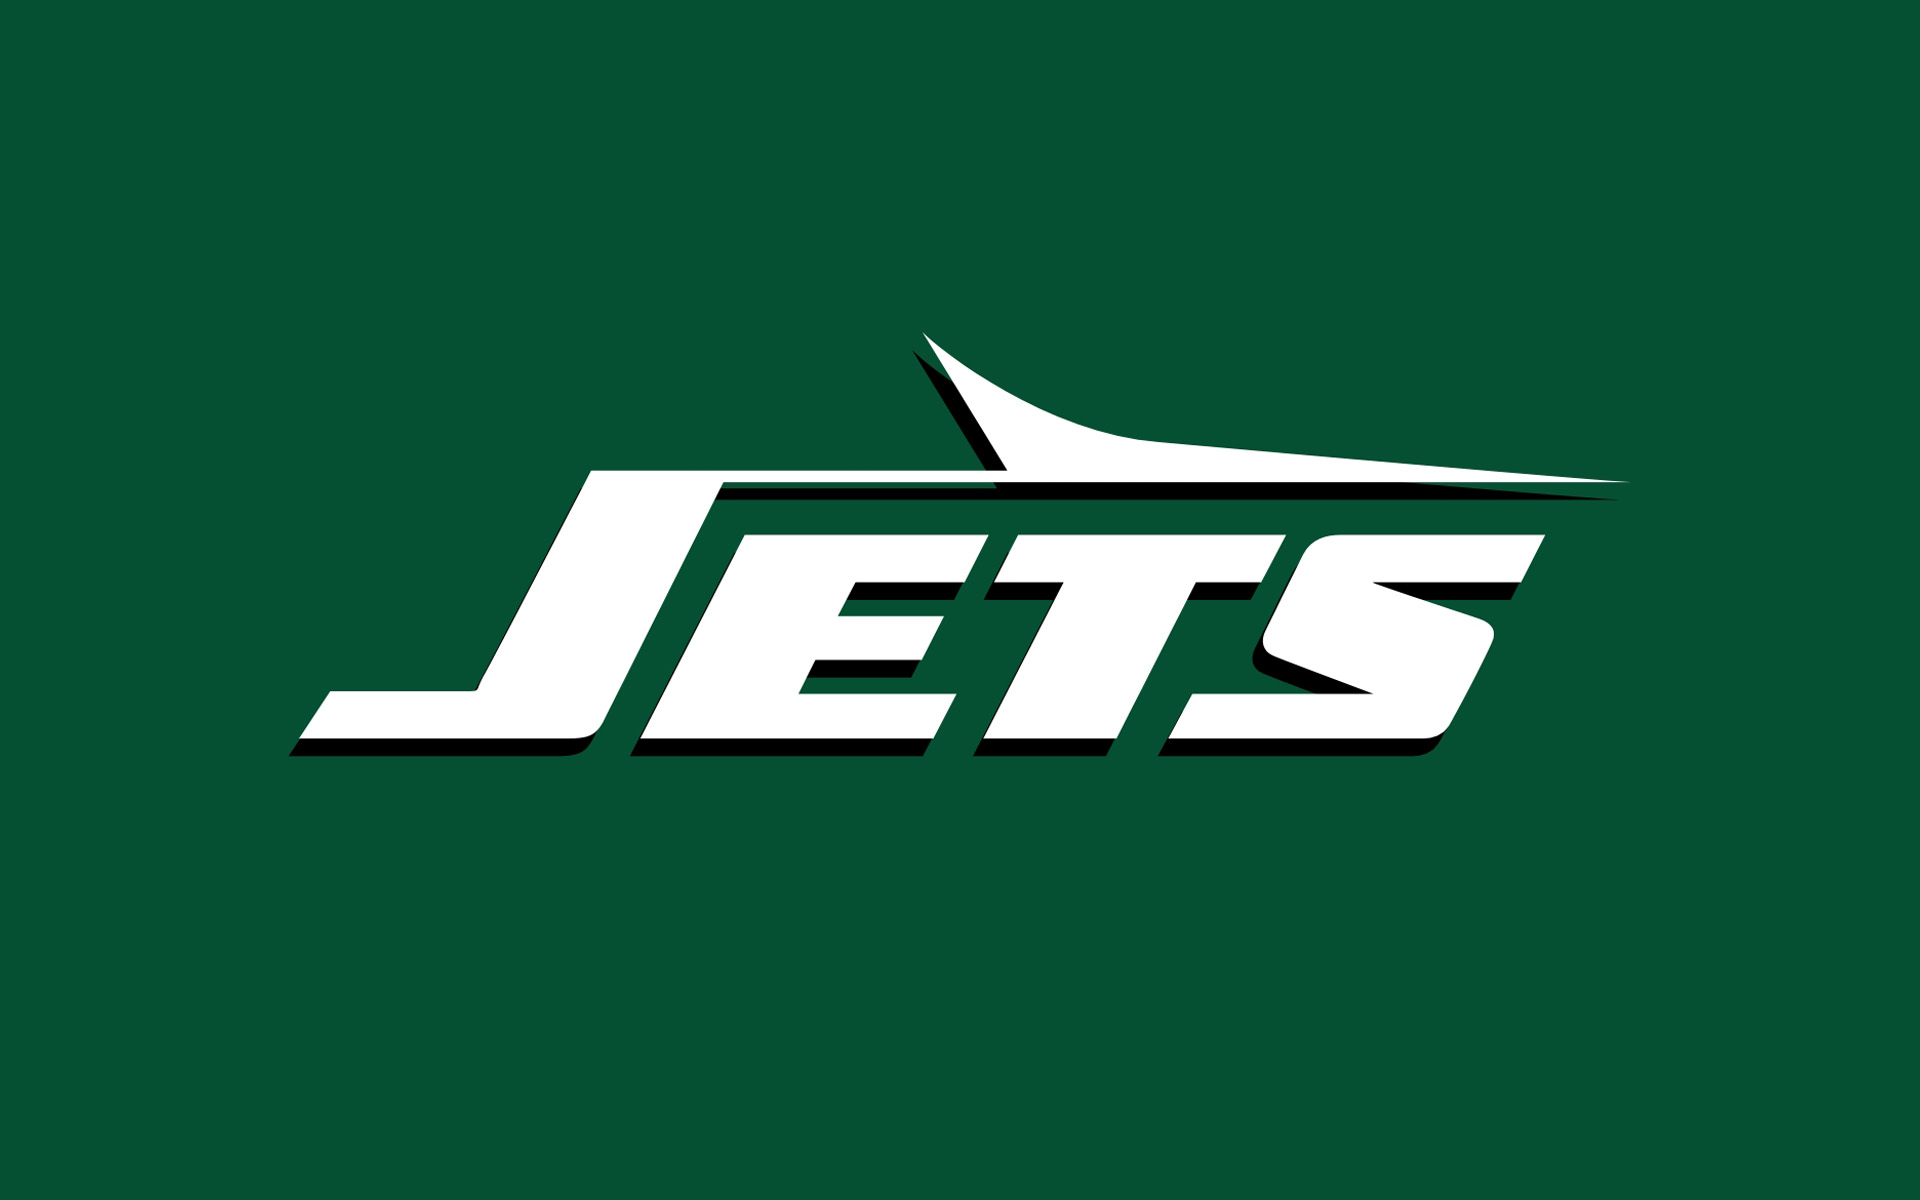 jets in the - photo #45